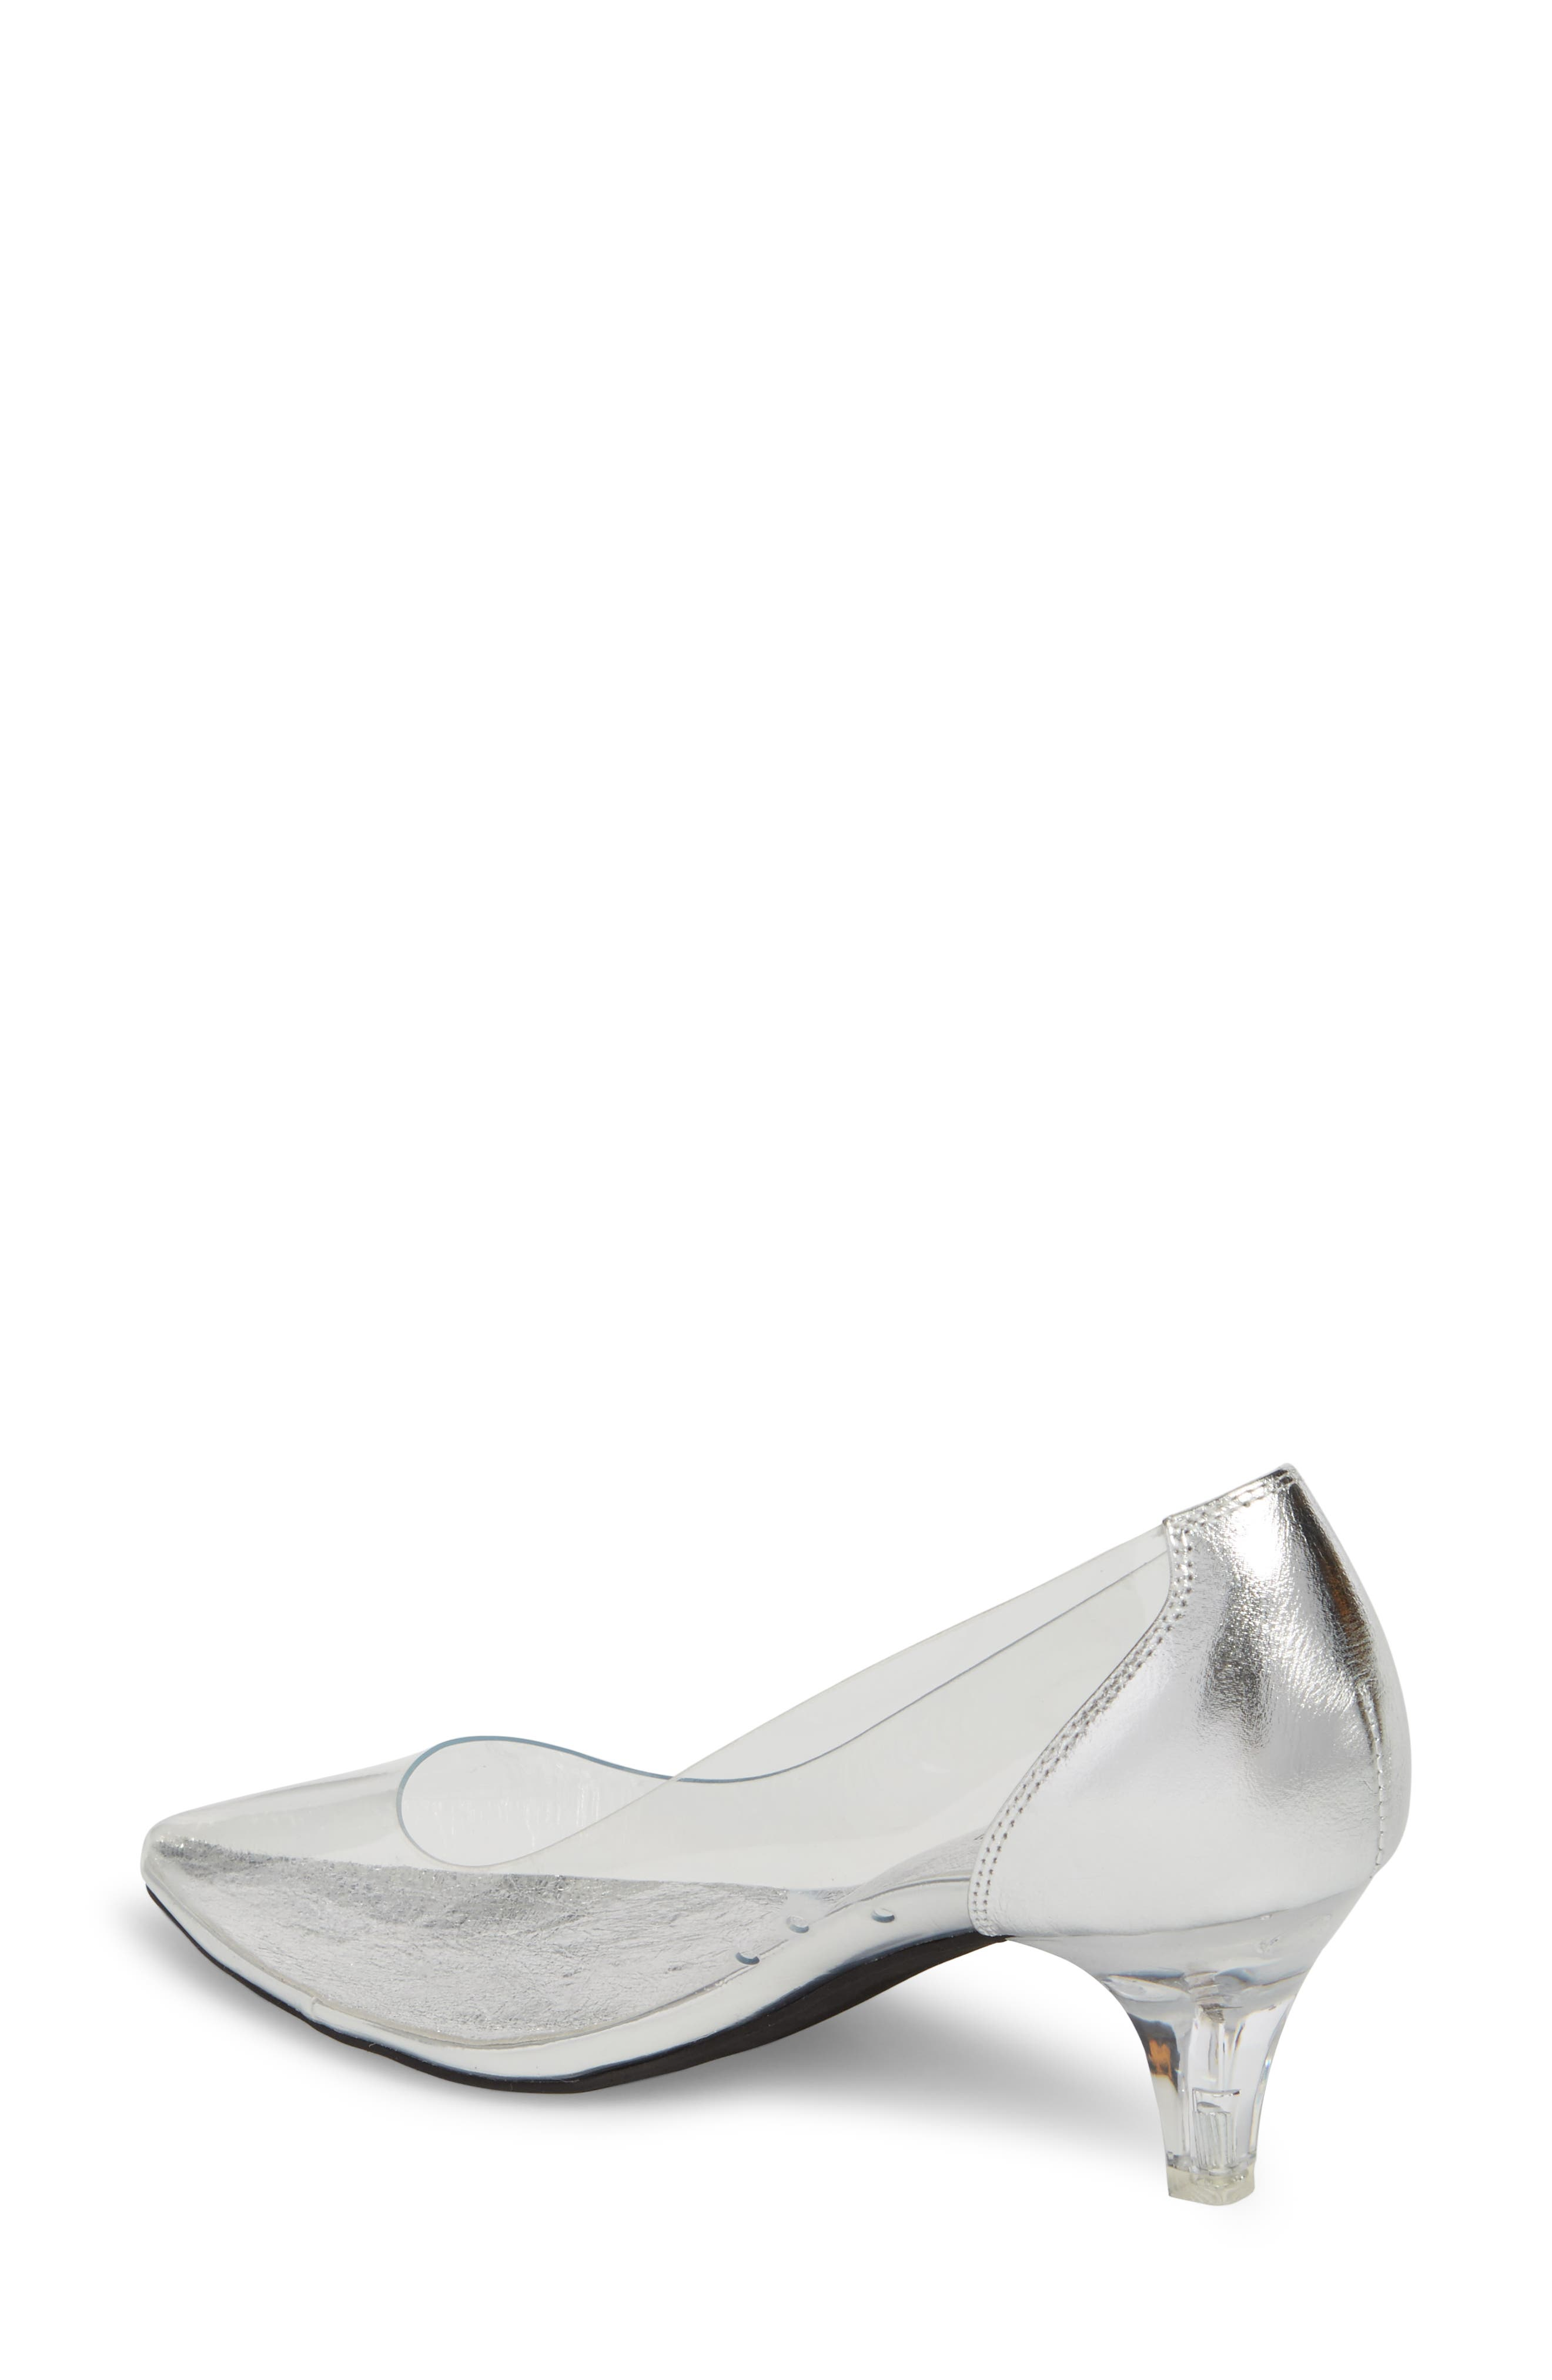 Gracienne Transparent Pump,                             Alternate thumbnail 2, color,                             CLEAR/ SILVER LEATHER